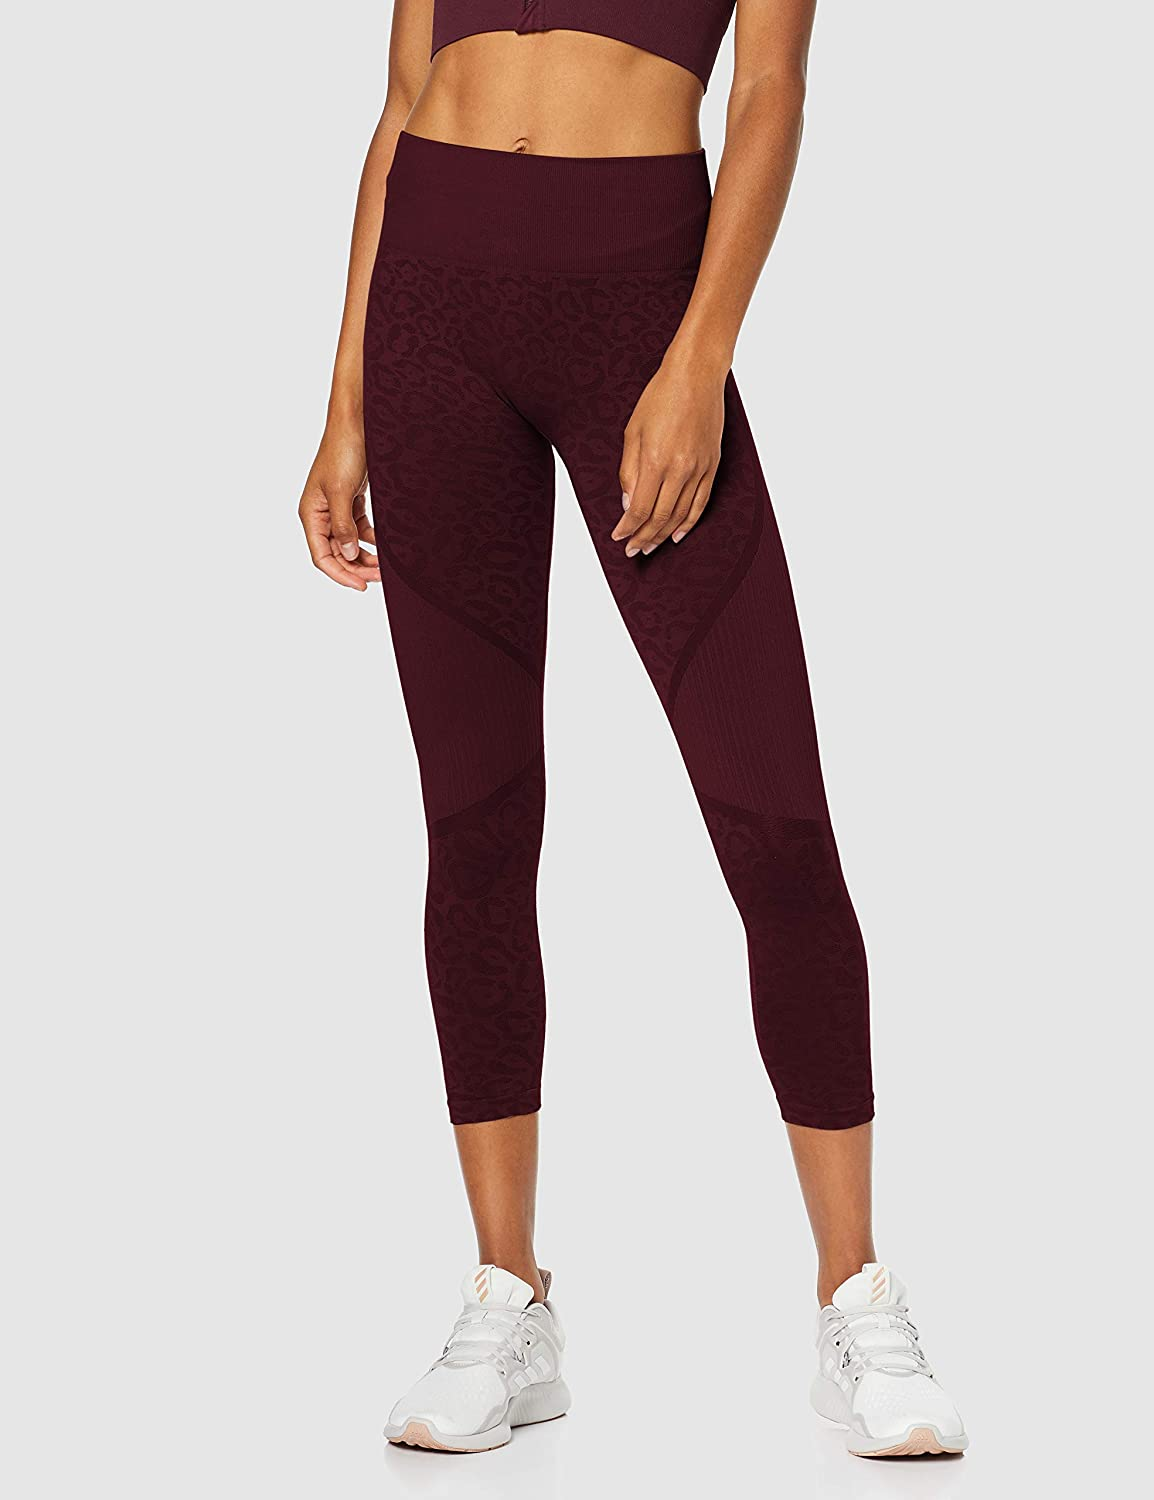 Amazon-Marke: AURIQUE Damen Nahtlose 7/8-Sportleggings